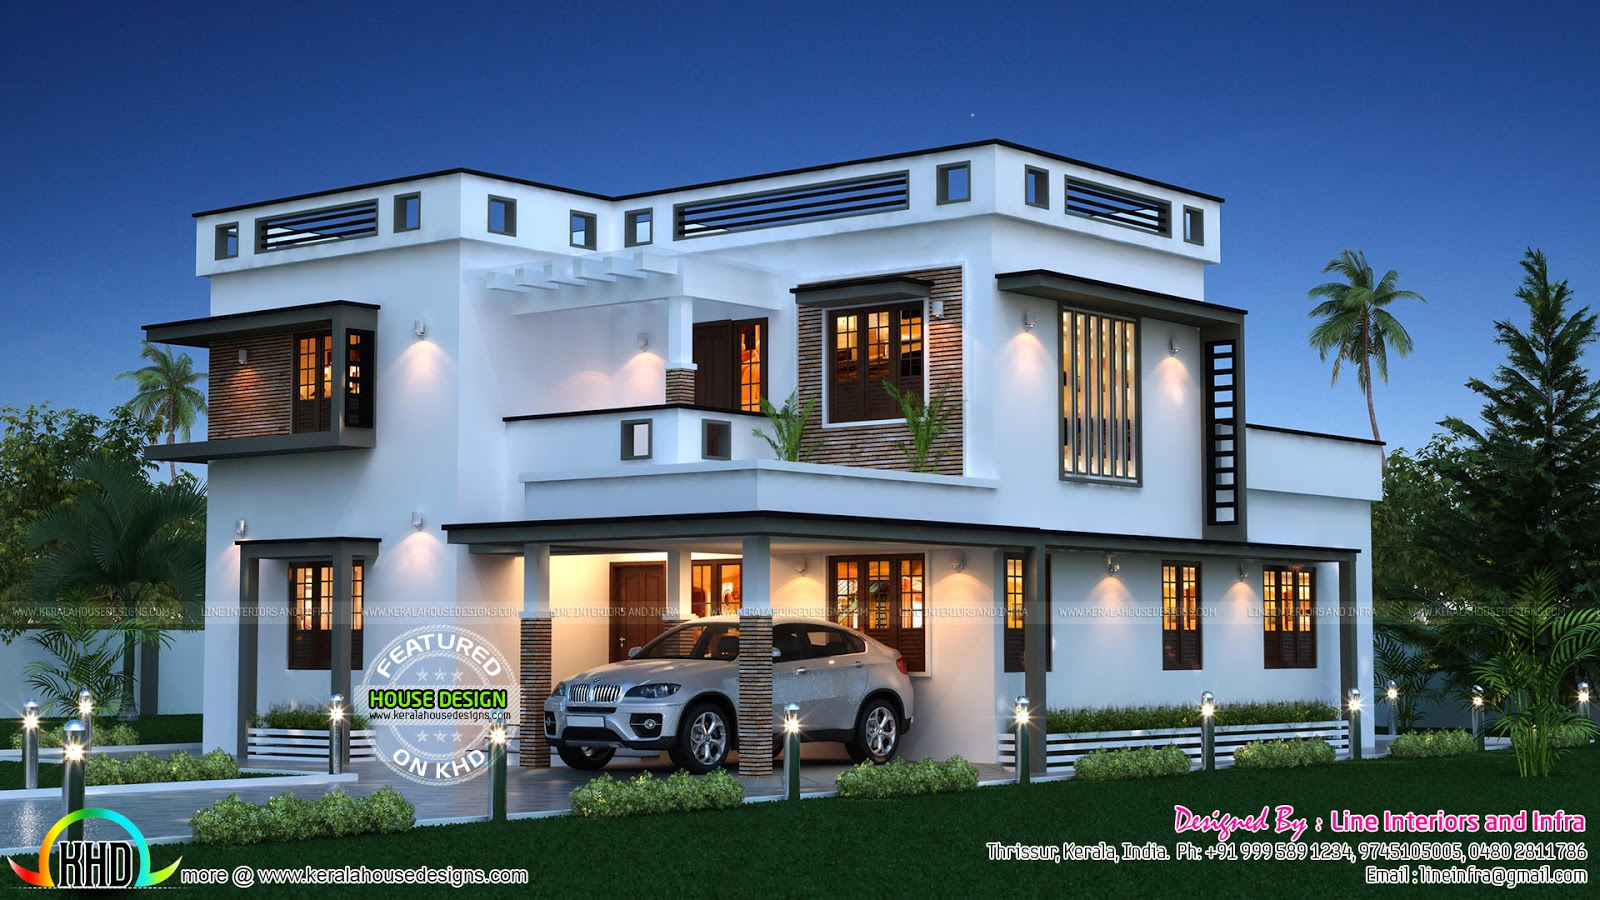 Pics for 1000 sq ft house plans with front elevation - House plans under square feet gallery ...